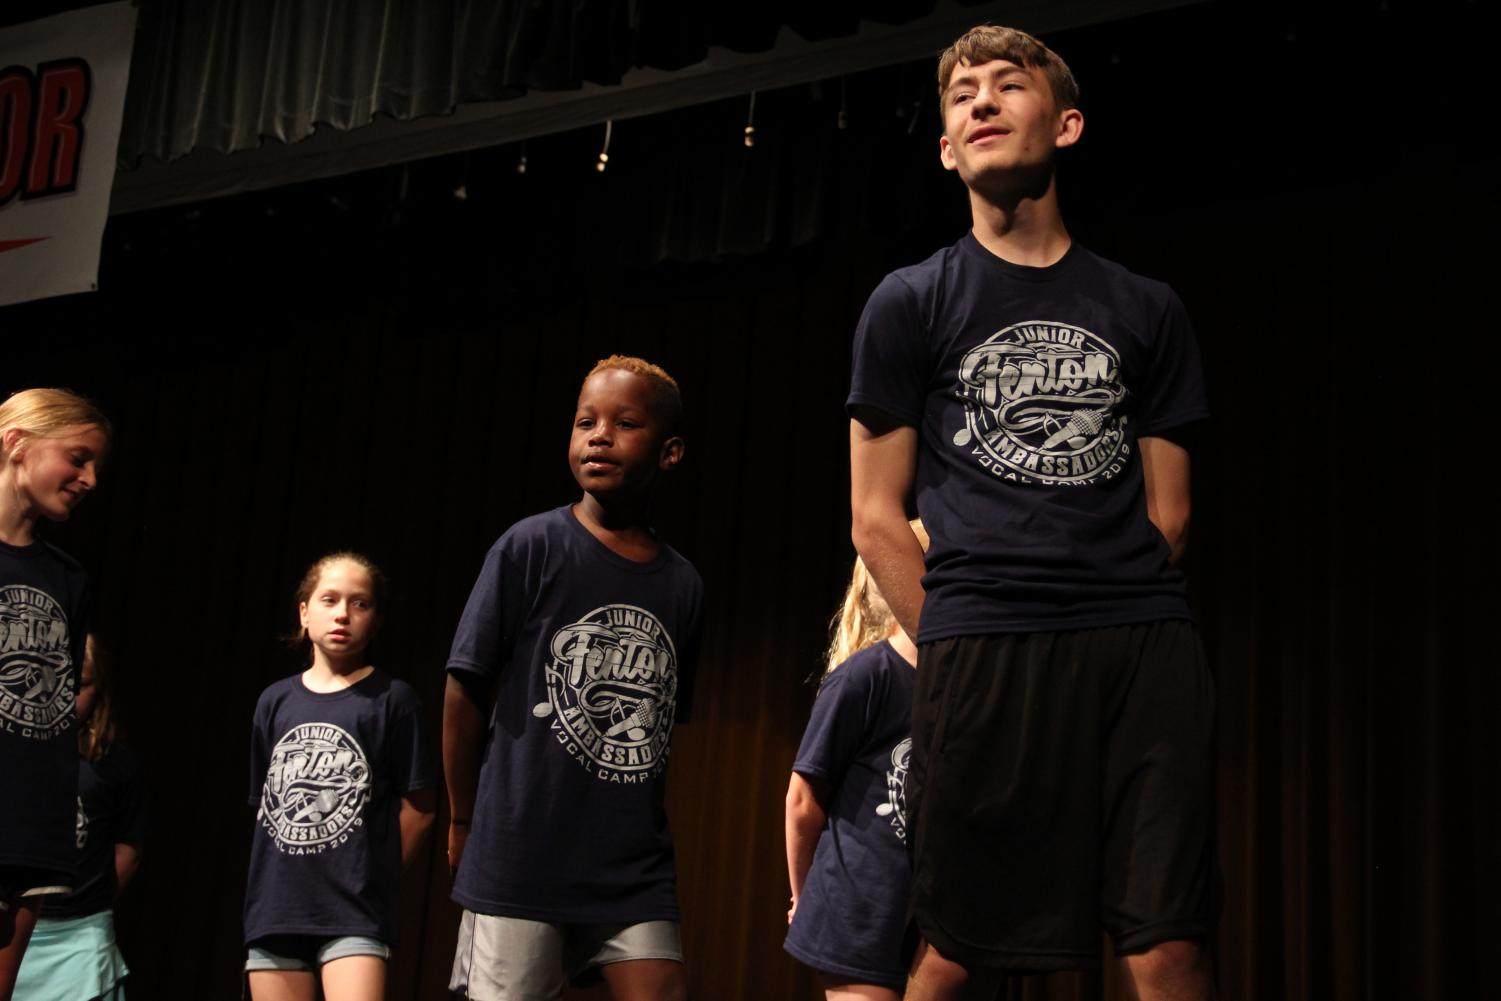 Leading the campers in a song, junior Chris Lefave sings with his friends. The Ambassadors volunteered at the Jr. Ambassadors camp the week of June 23.